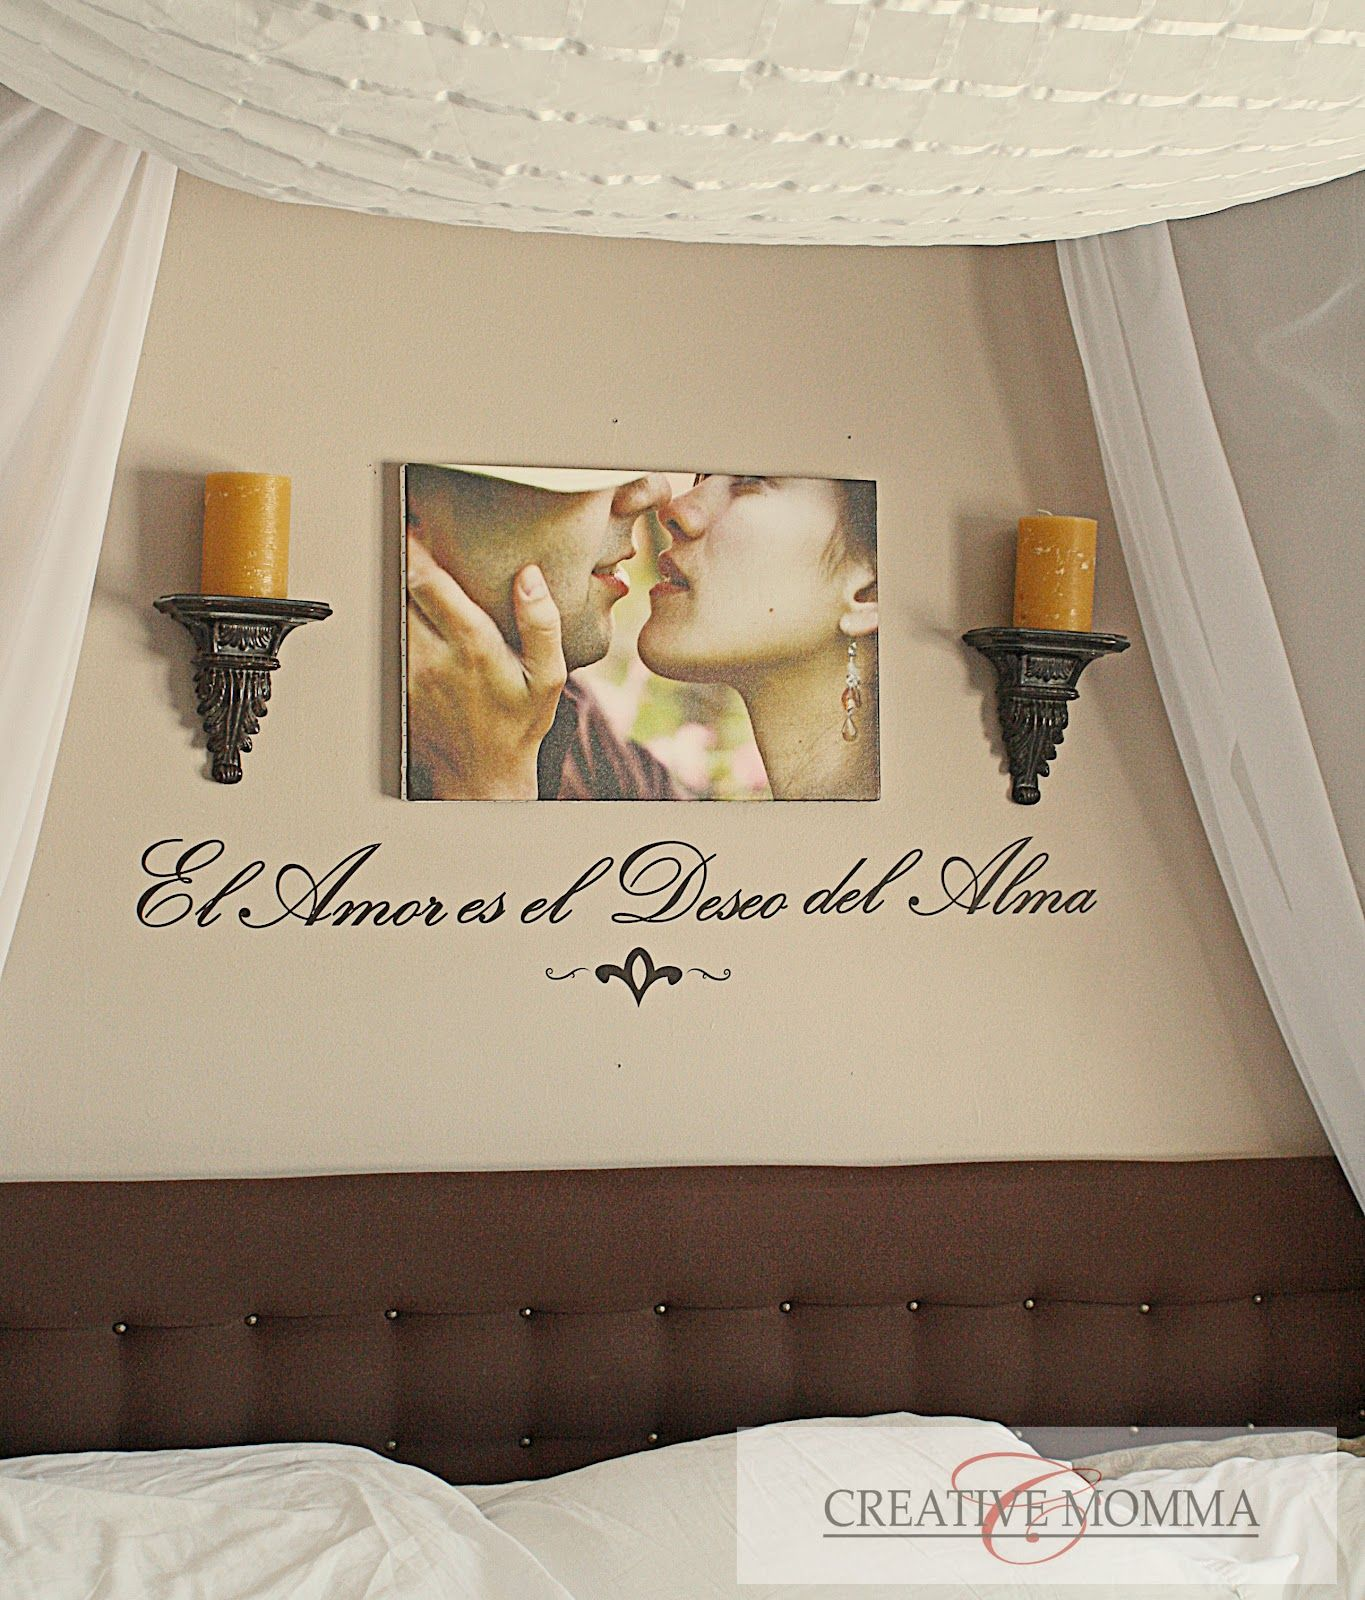 Couple bedroom wall decoration ideas - Bedroom Wall Decor Wall Decor